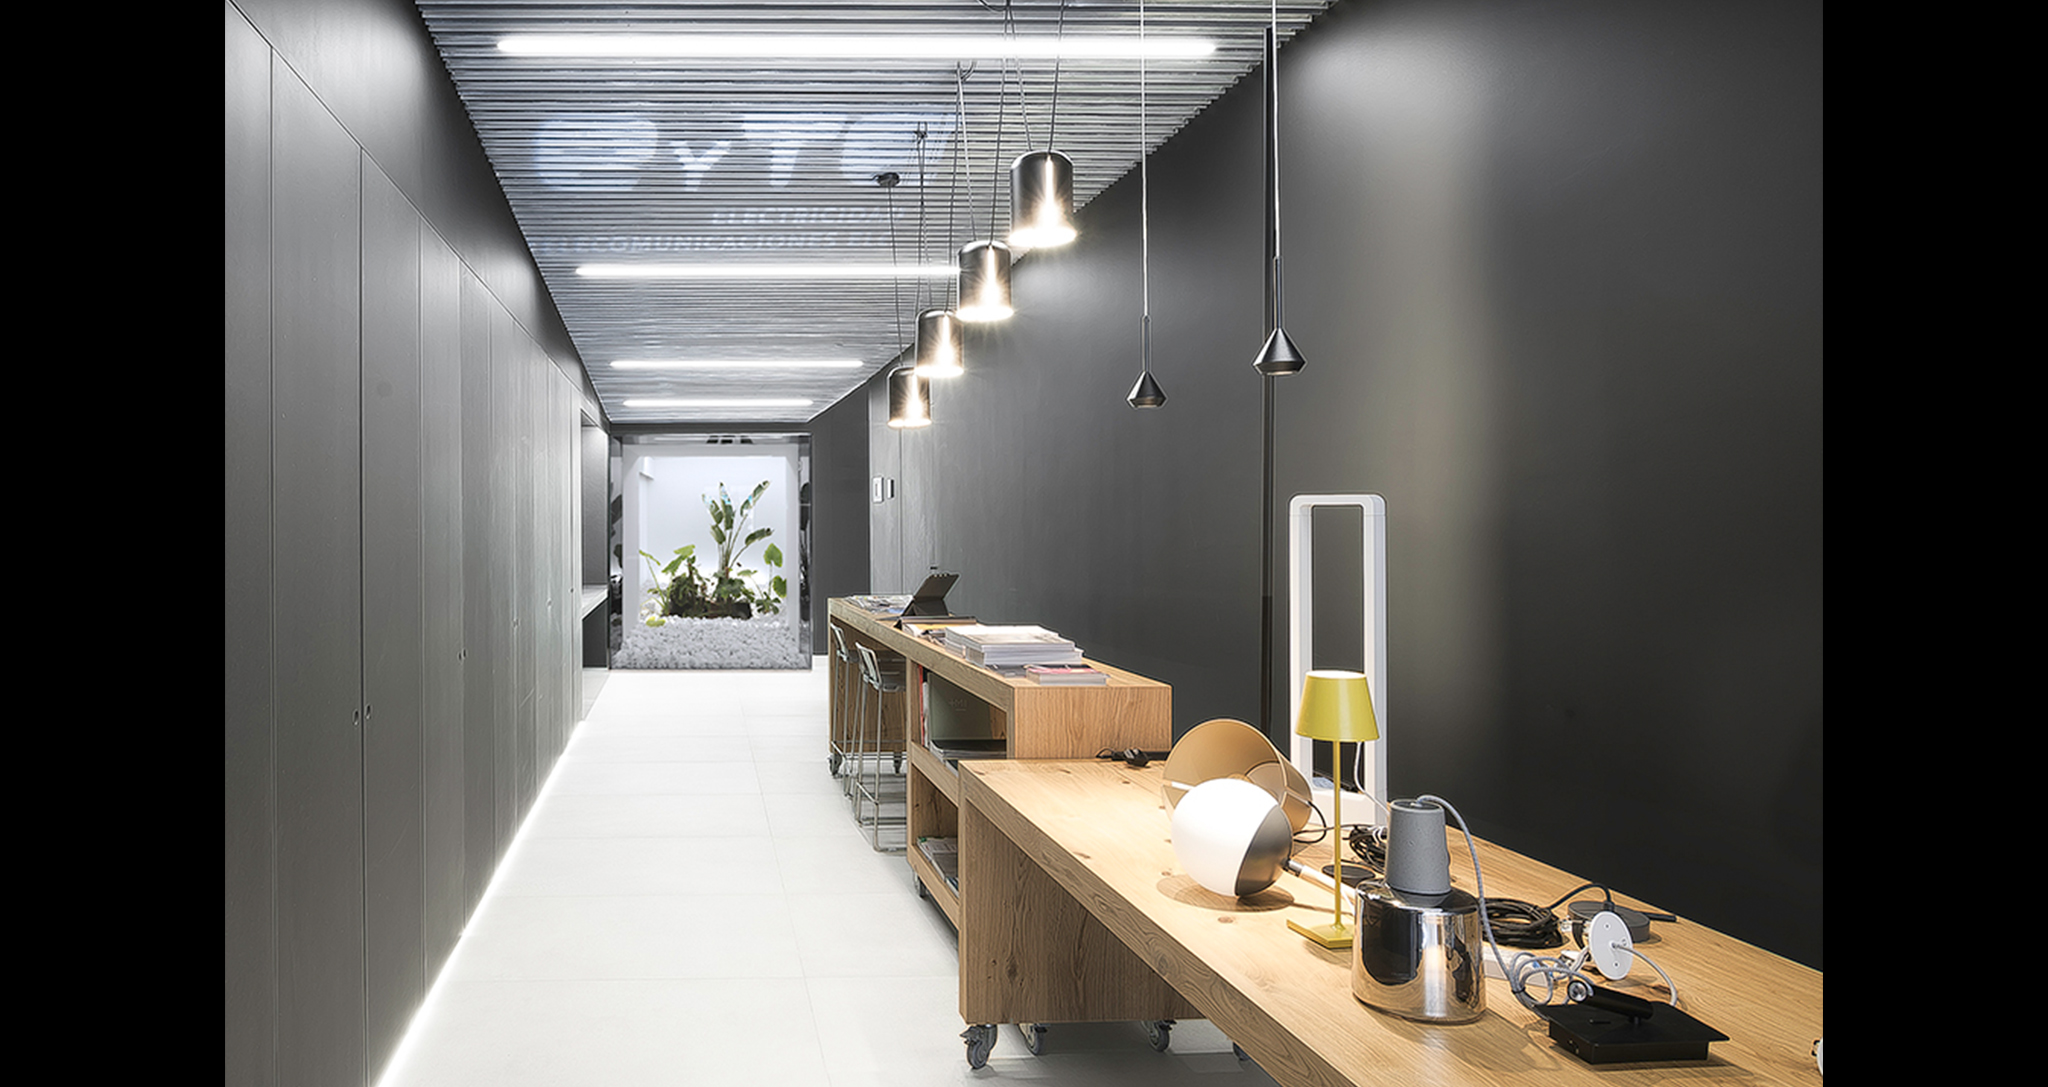 EYTE NEW SHOWROOM REMODELING OFFICES AND WAREHOUSE IN ELCHE ROCAMORA DESIGN AND ARCHITECTURE SPAIN